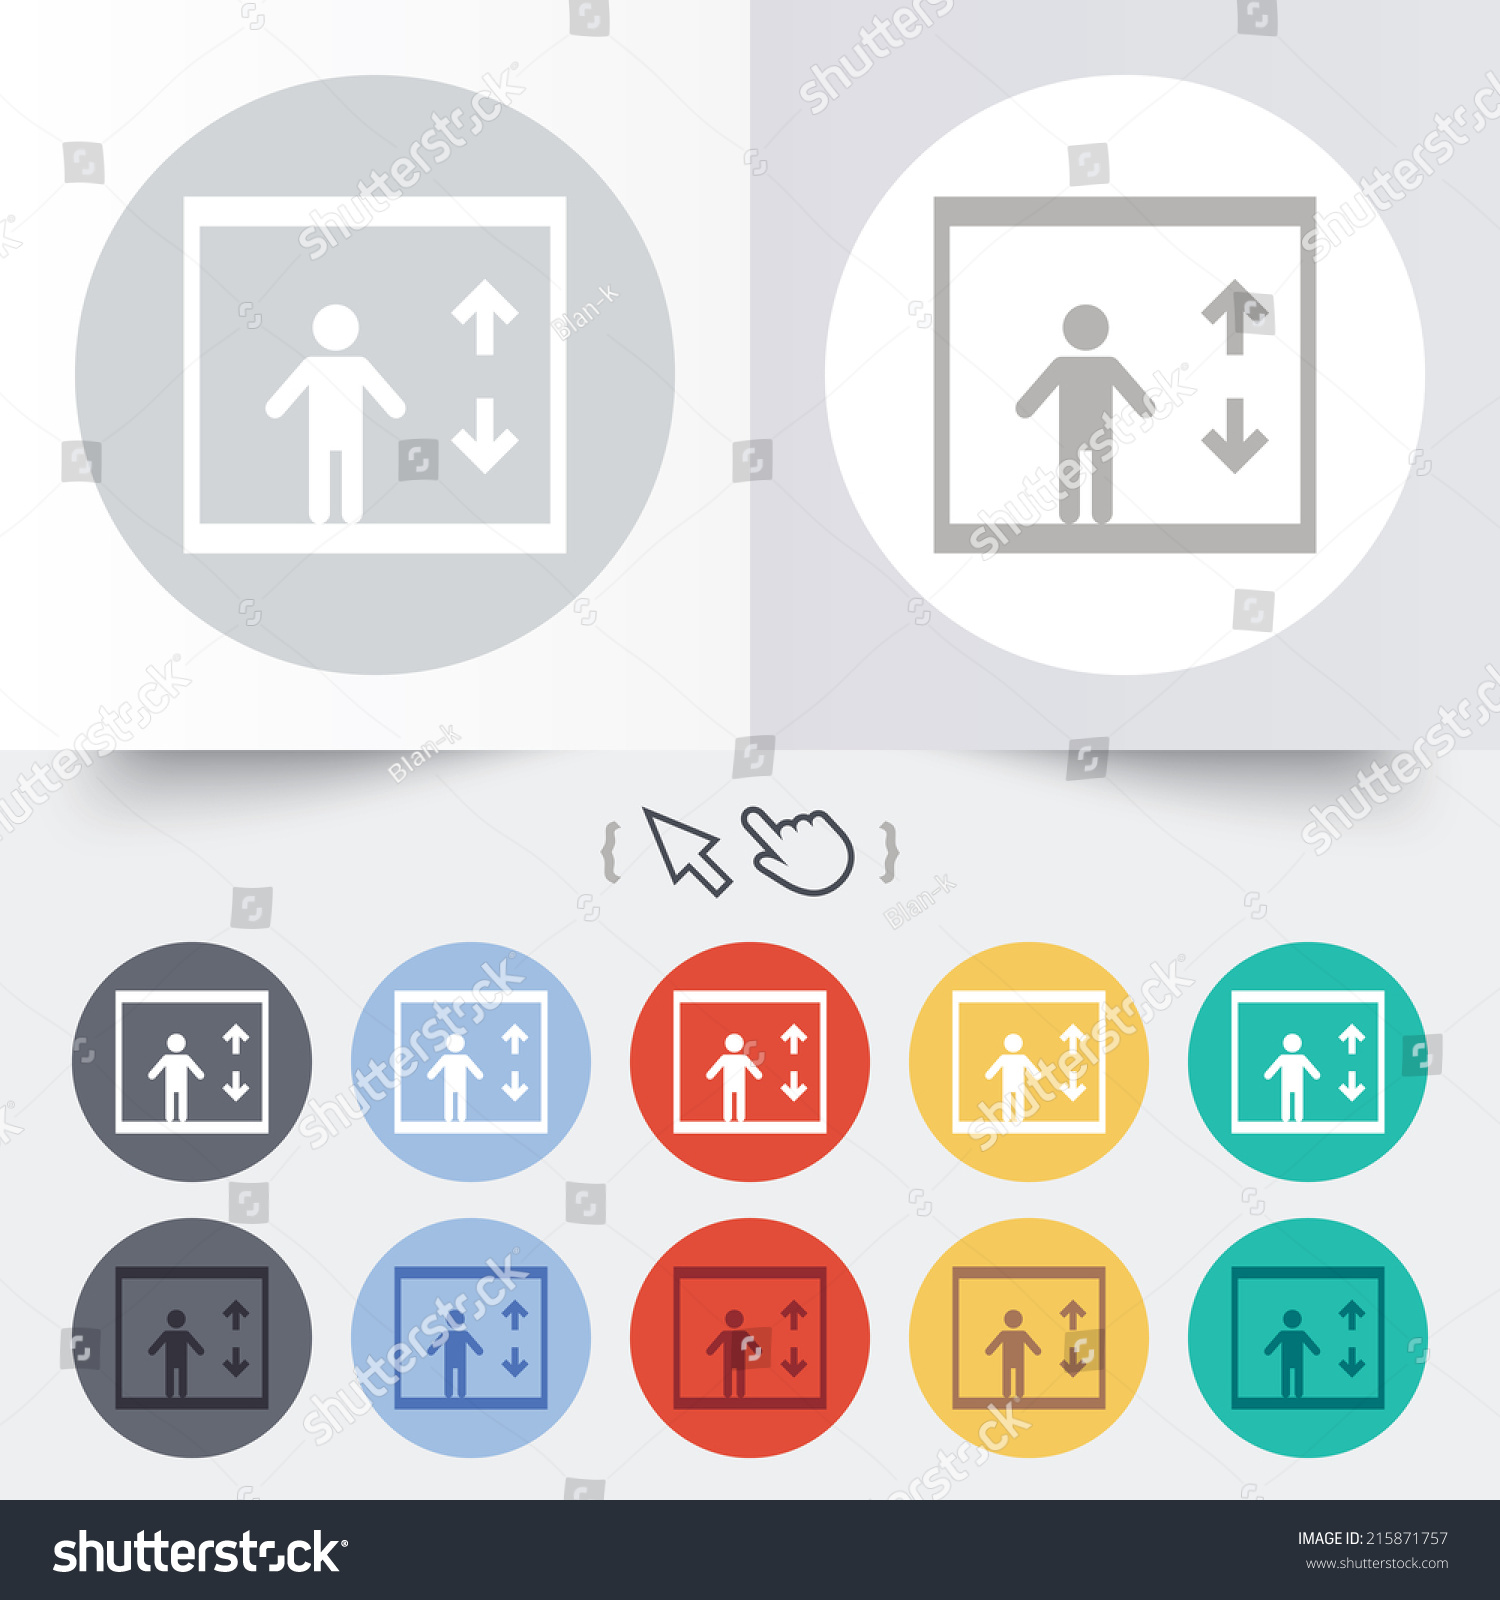 Elevator sign icon person symbol down stock illustration 215871757 person symbol with up and down arrows round 12 circle buttons biocorpaavc Choice Image